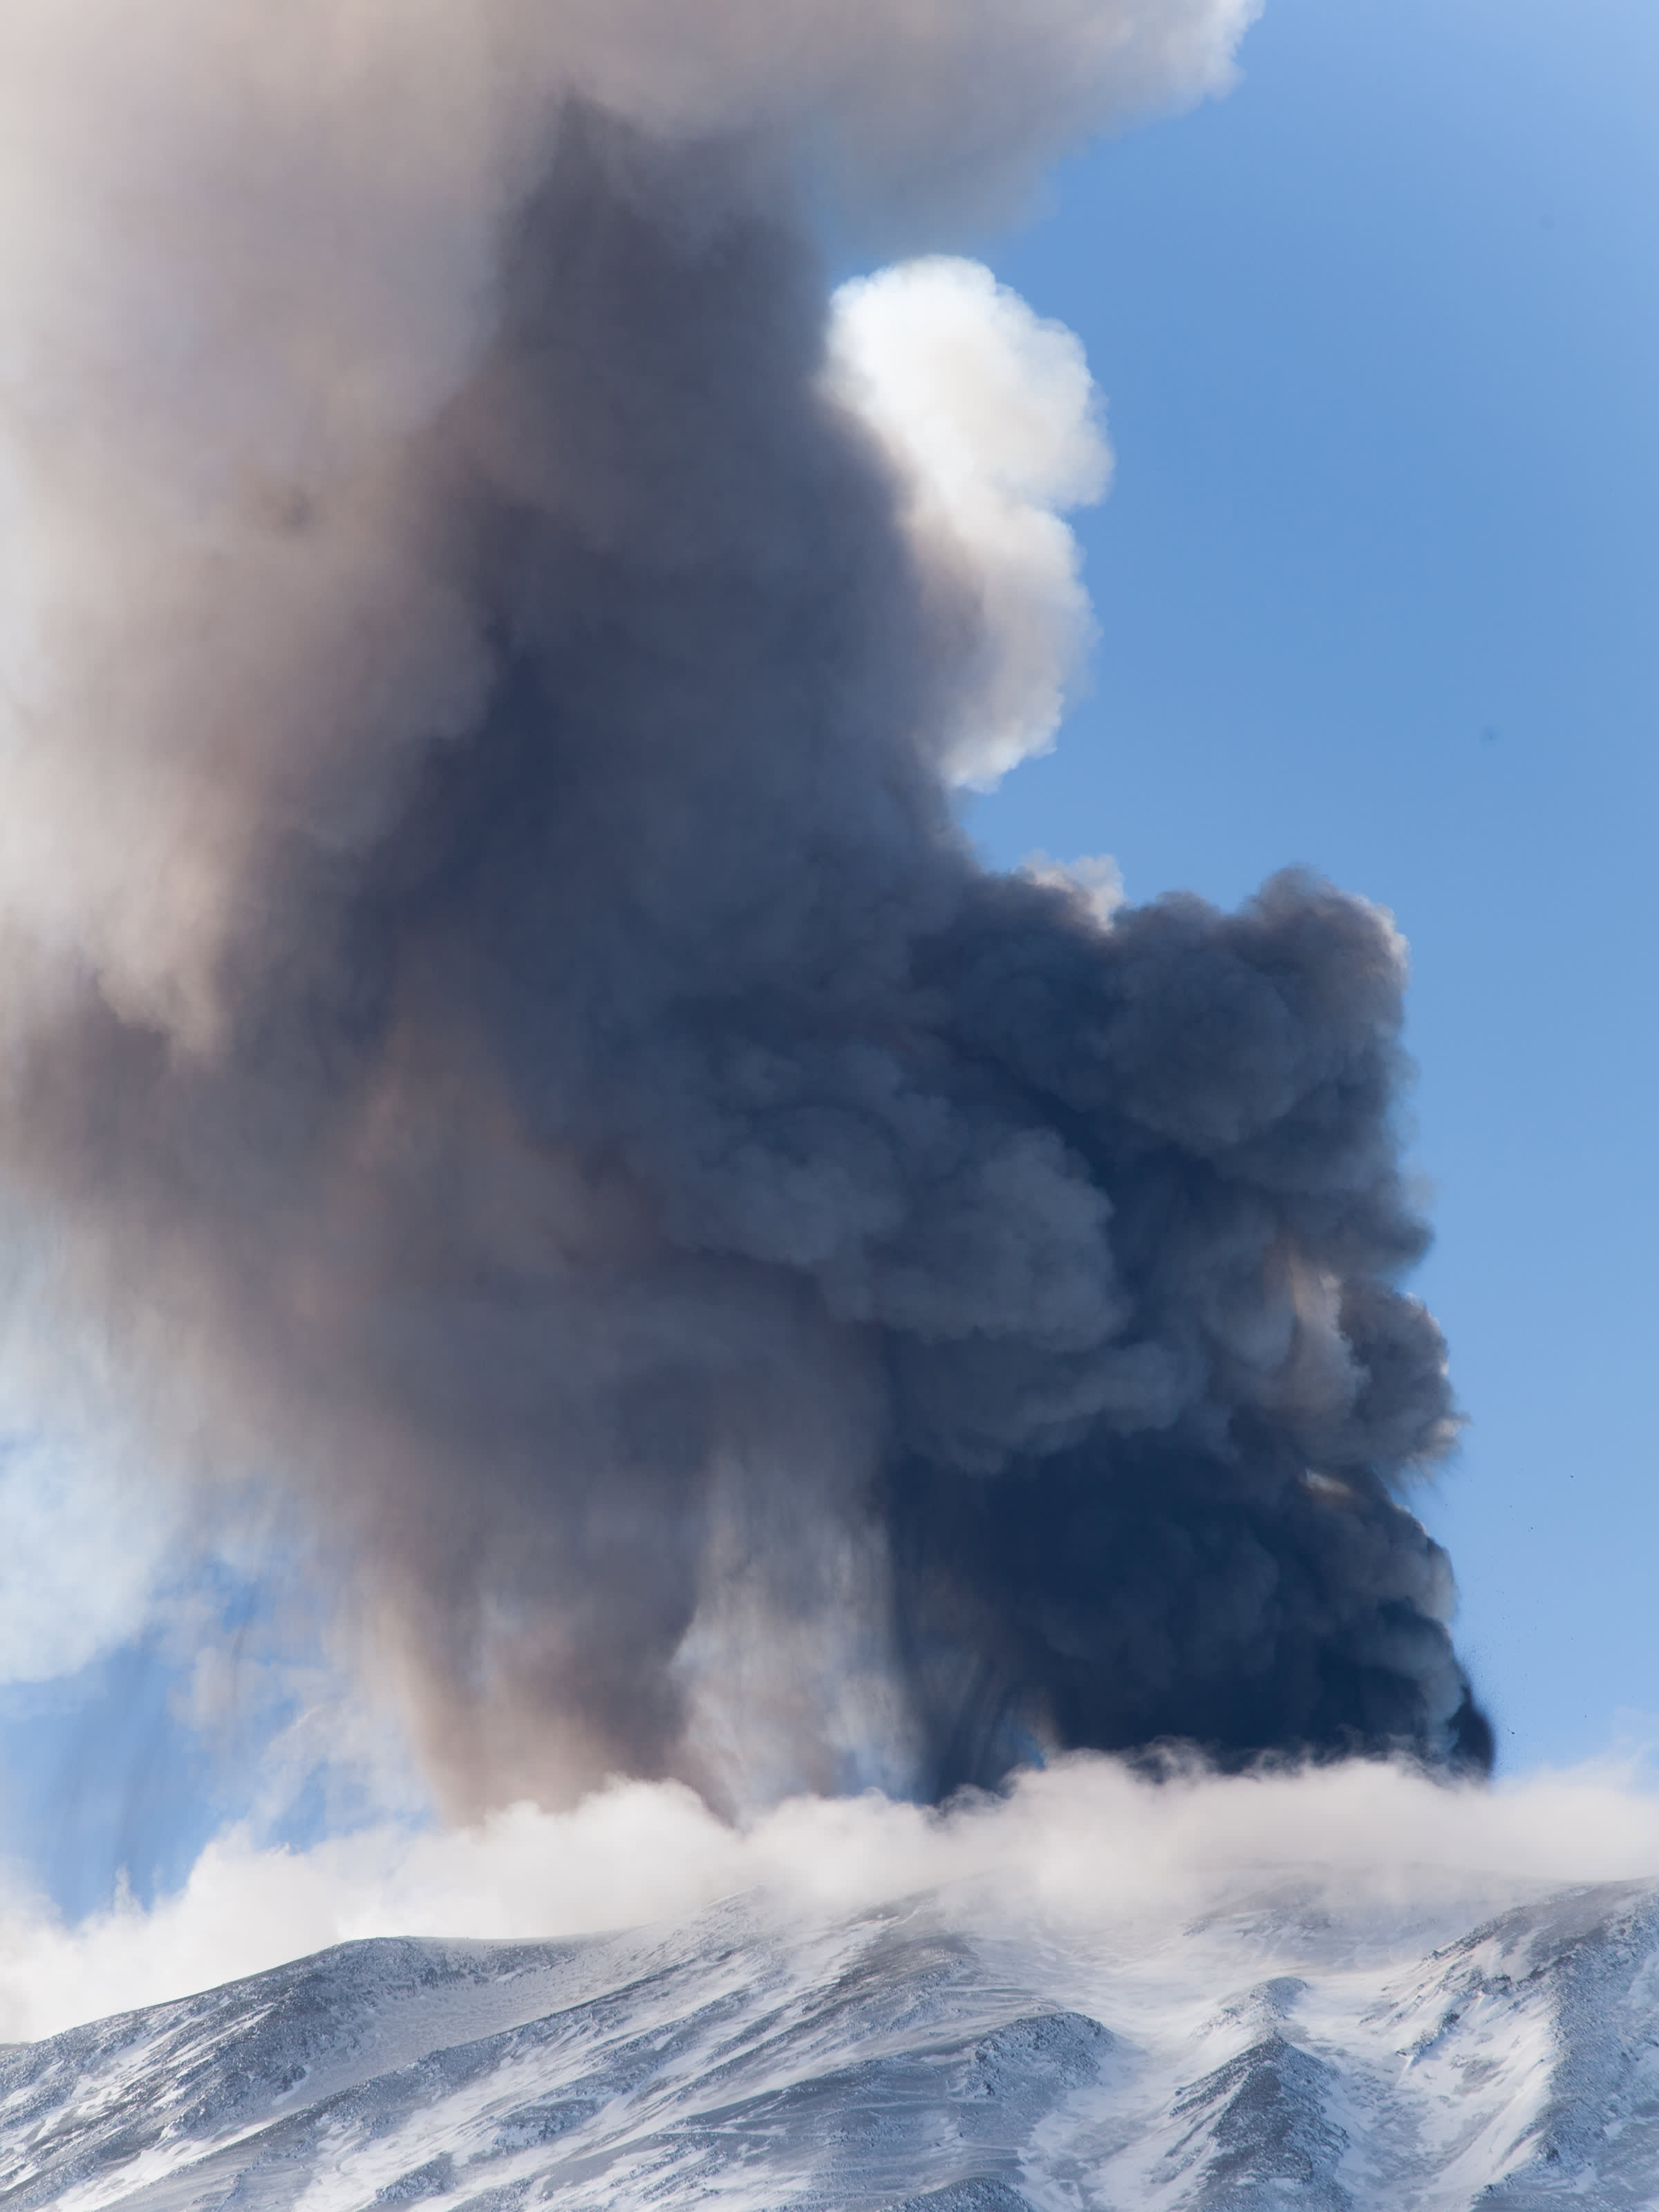 Volcanic eruption during a visit to mount Etna.